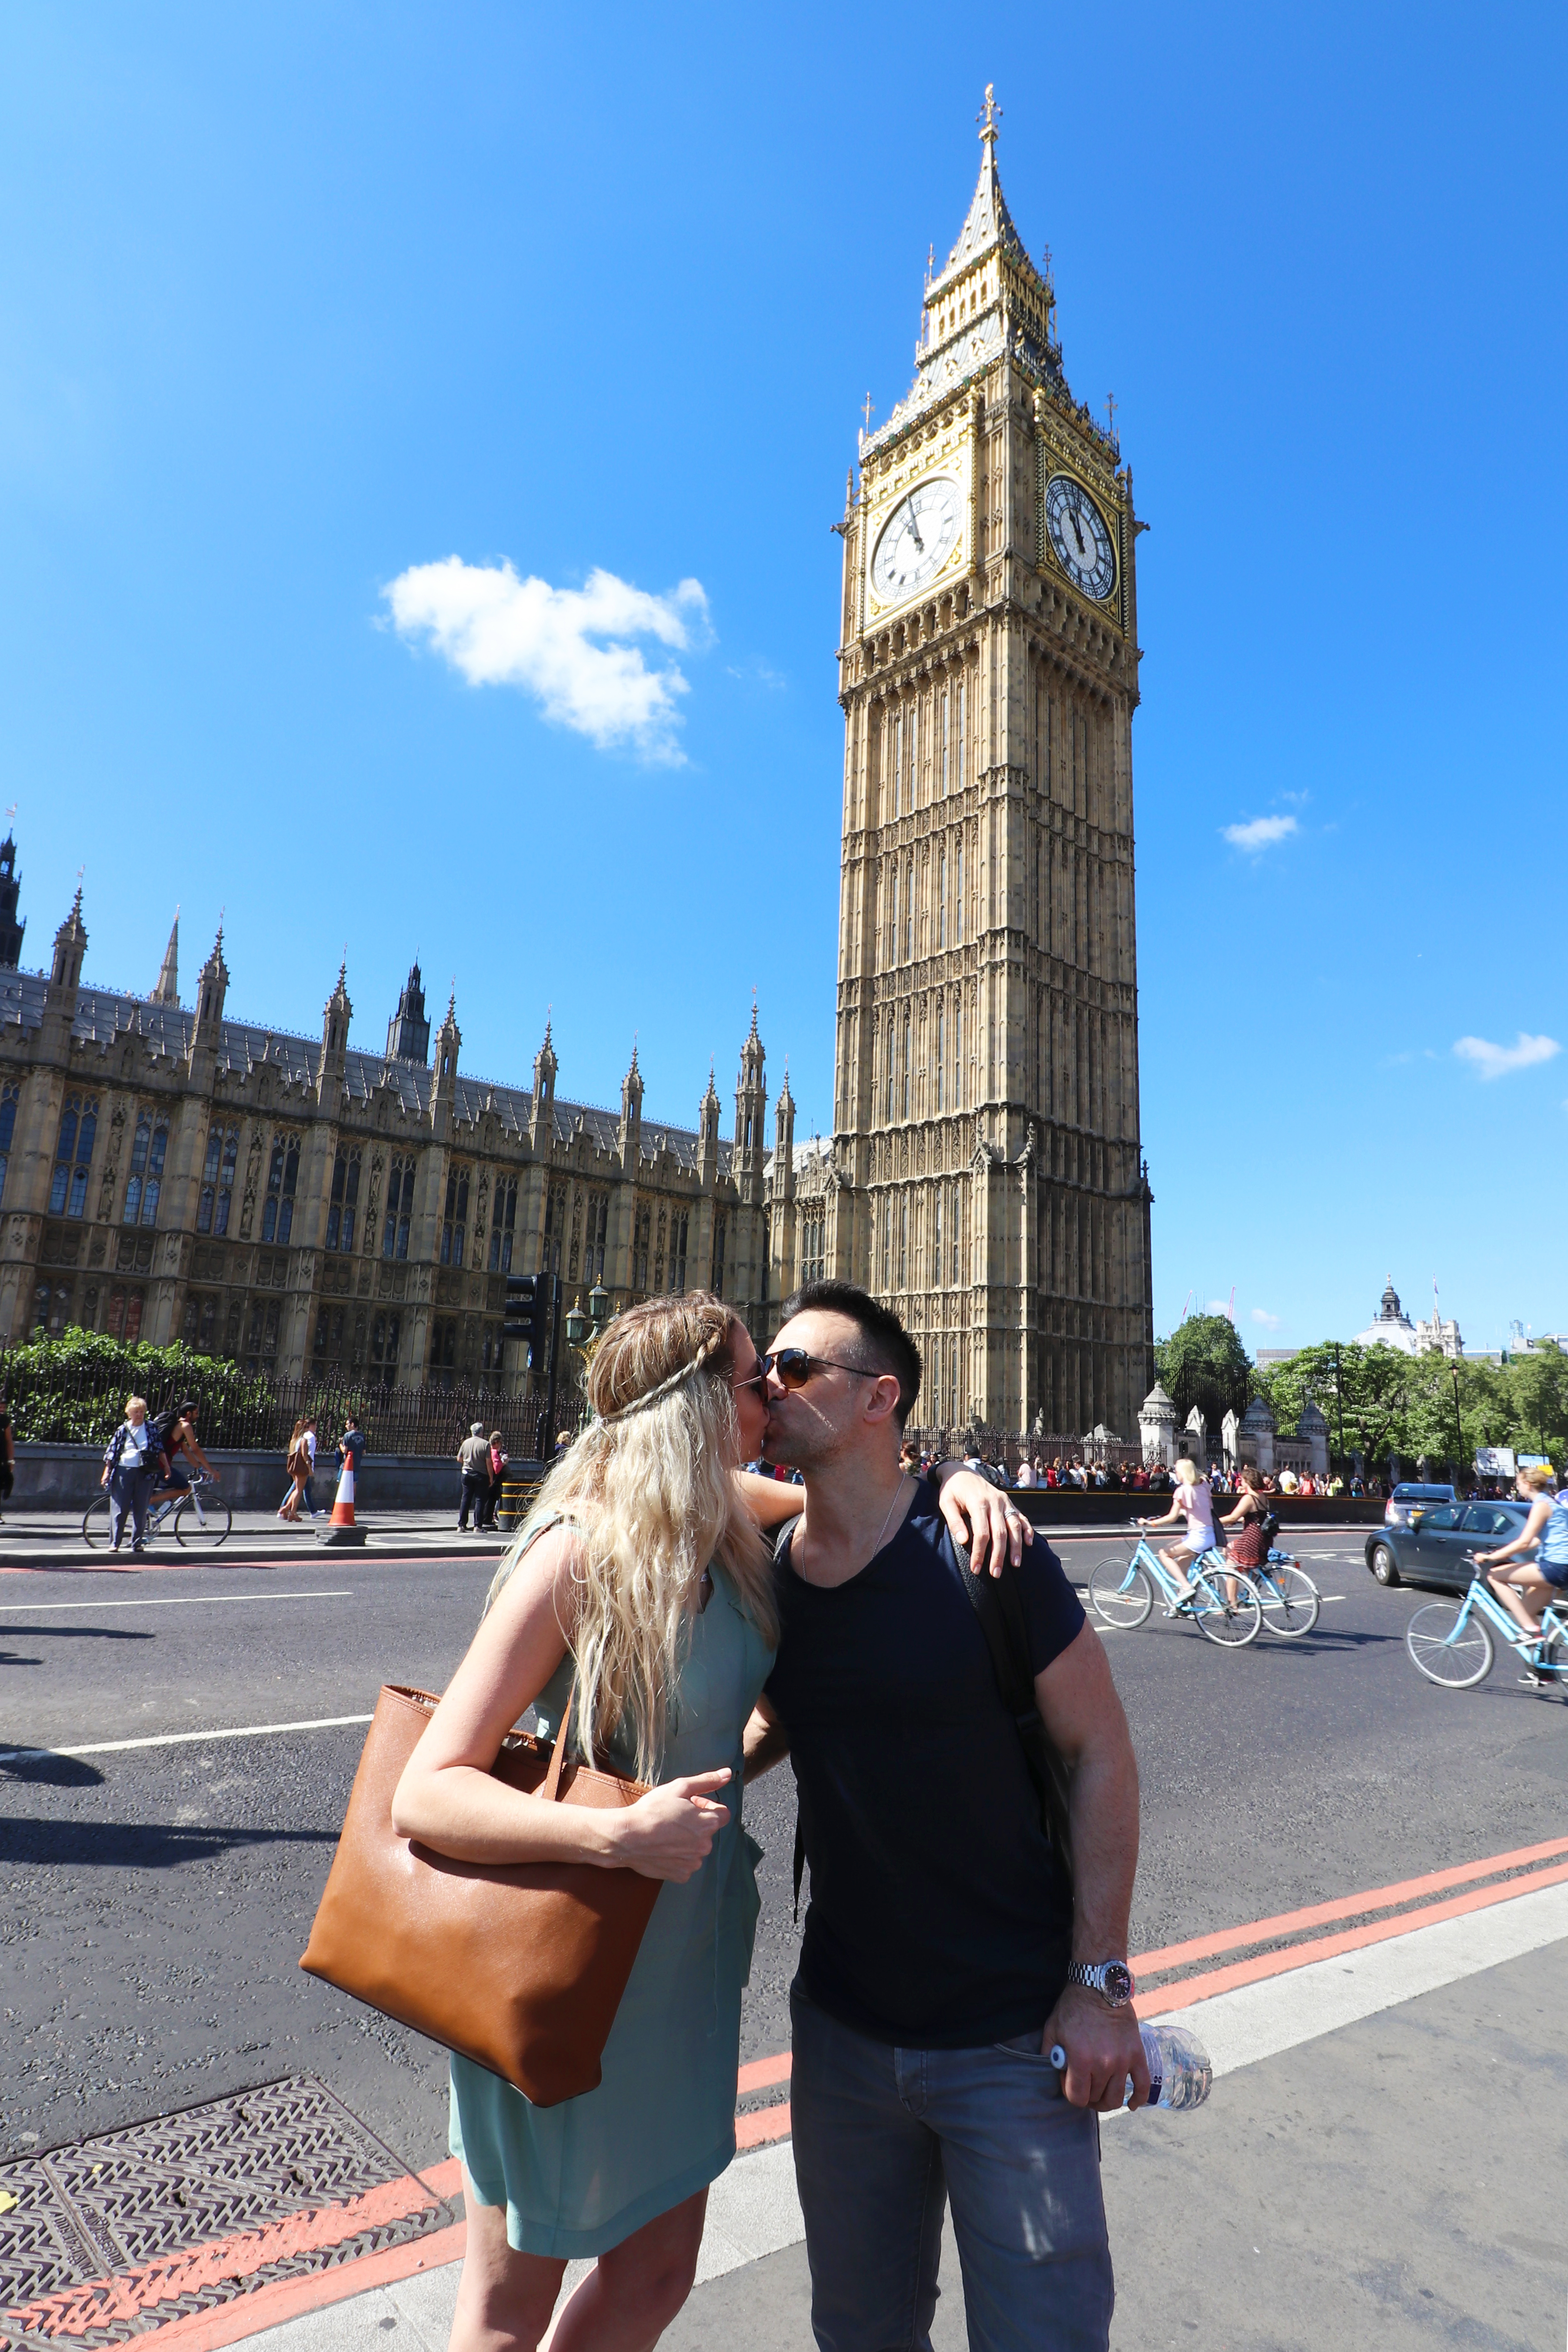 kisses-at-big-ben-copy